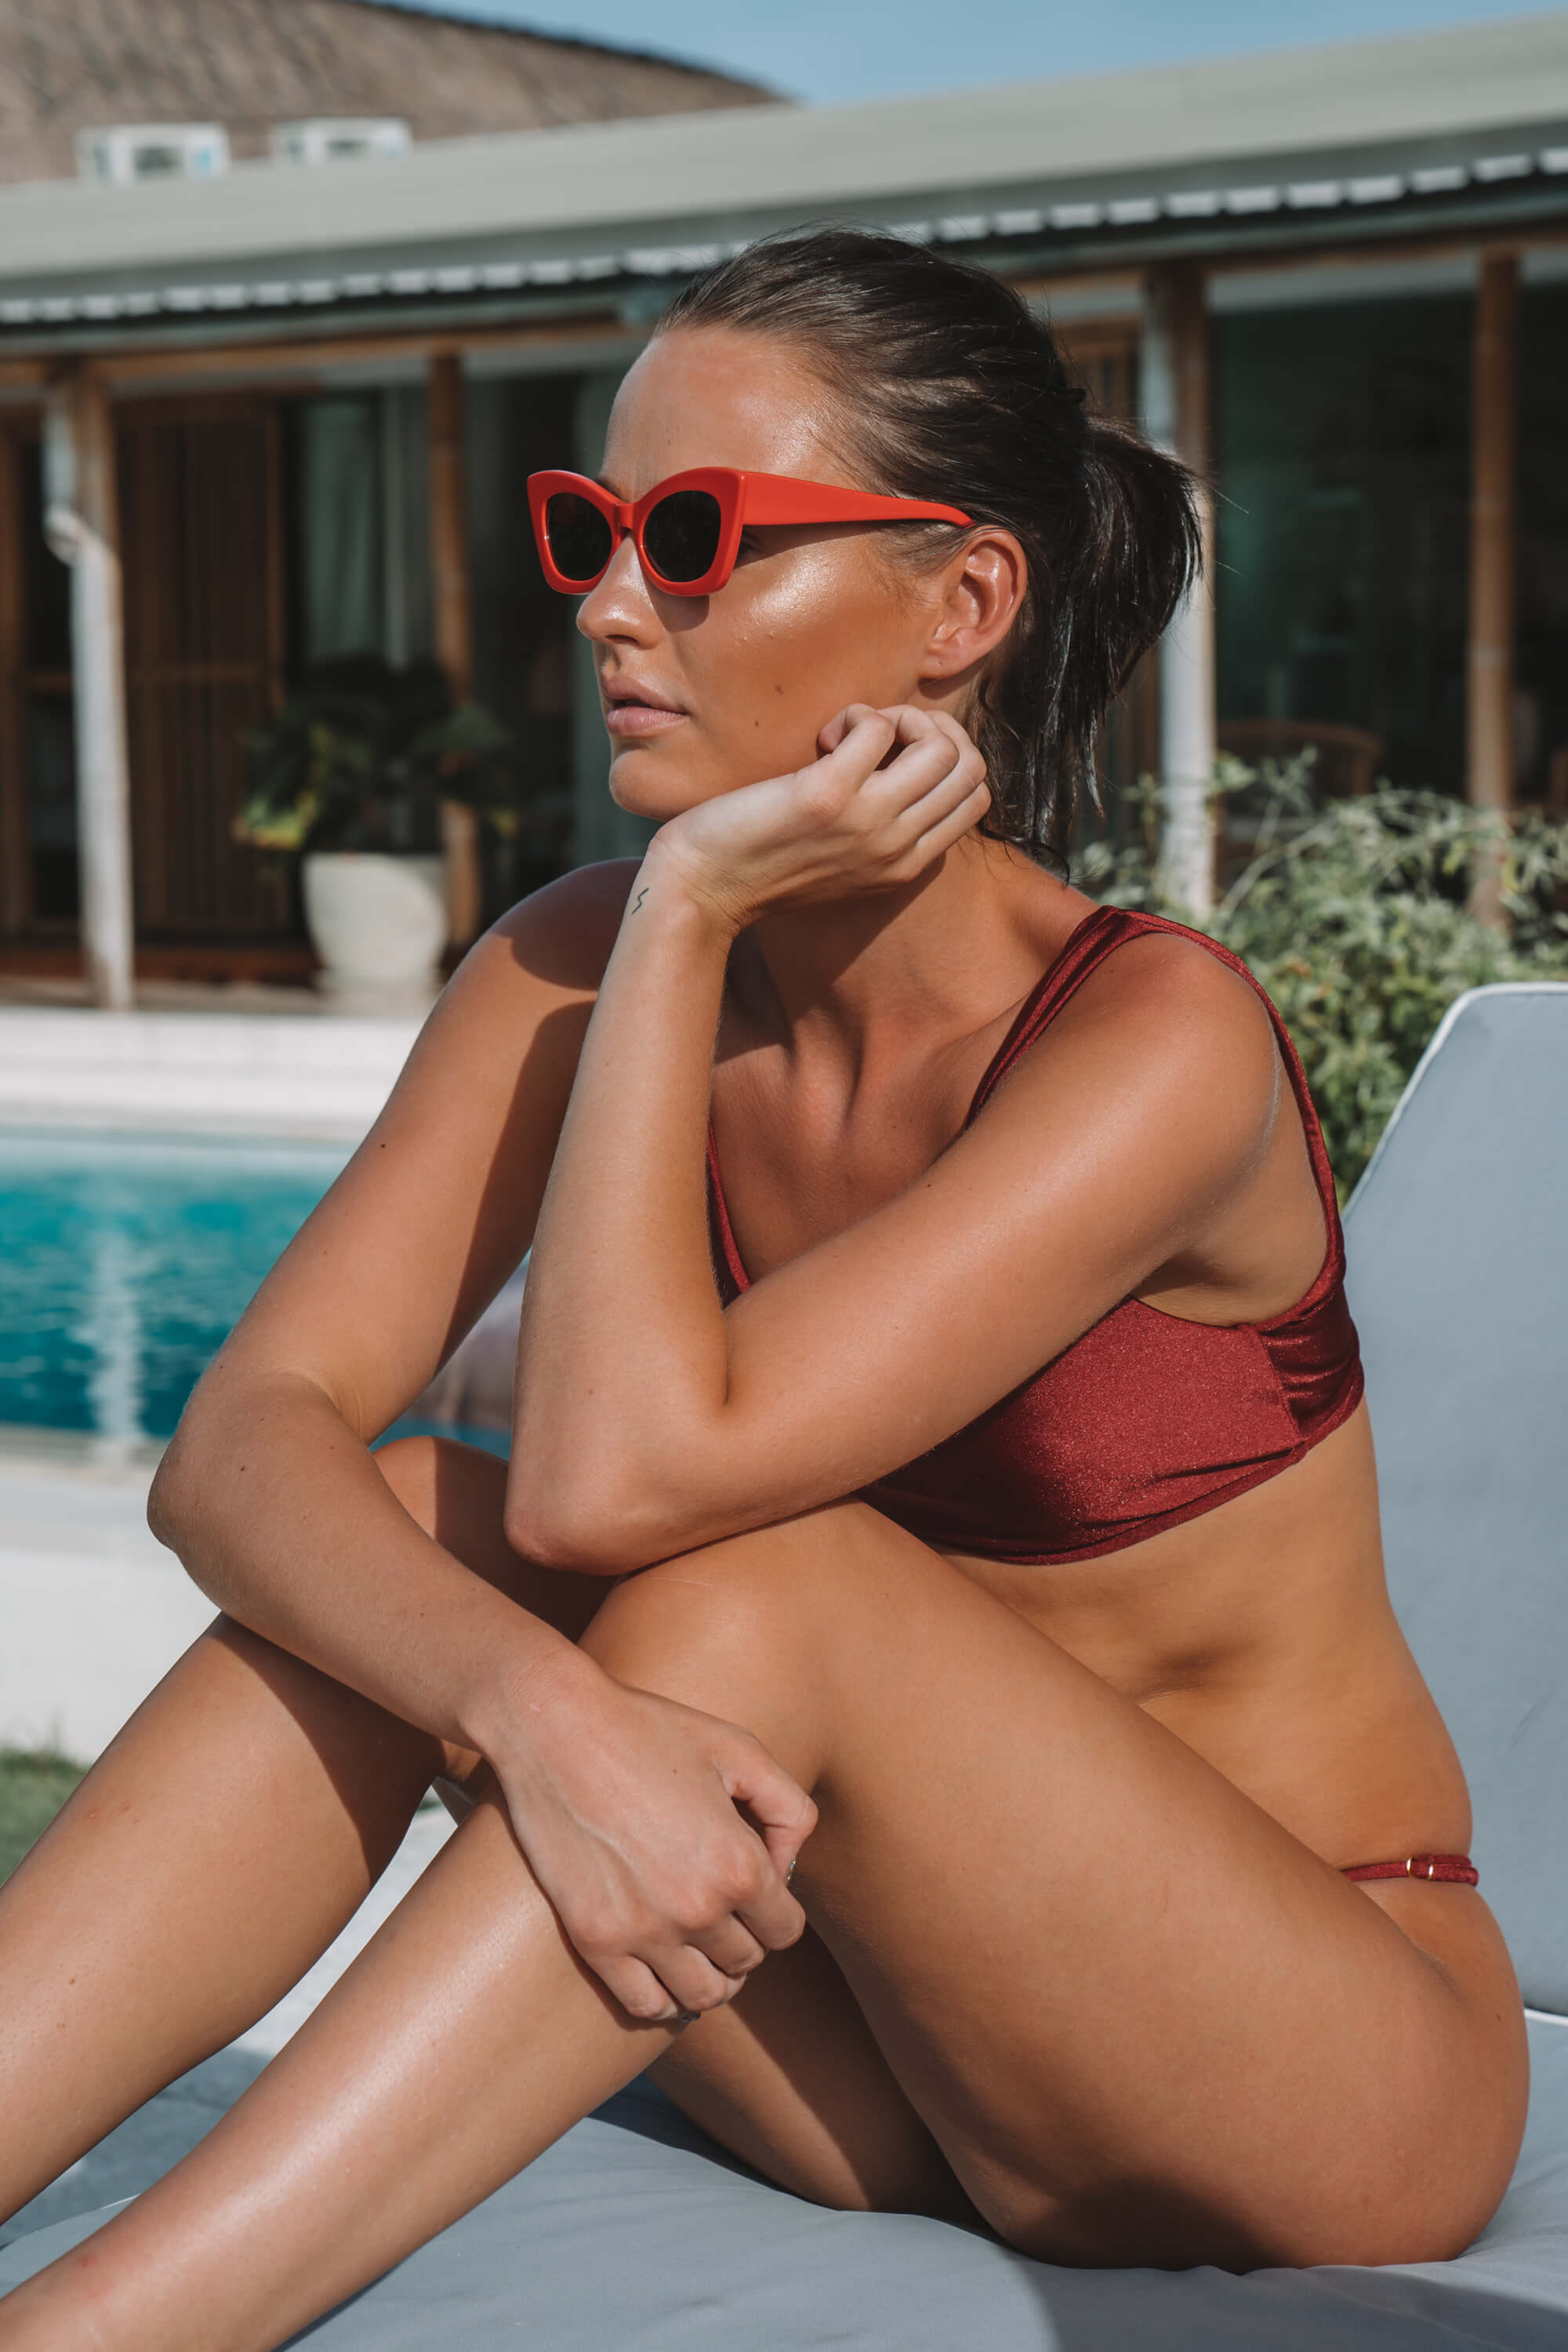 Soda Shades of Summer Australias best sunglasses eyewear online brand – Bali Model shoot_-23